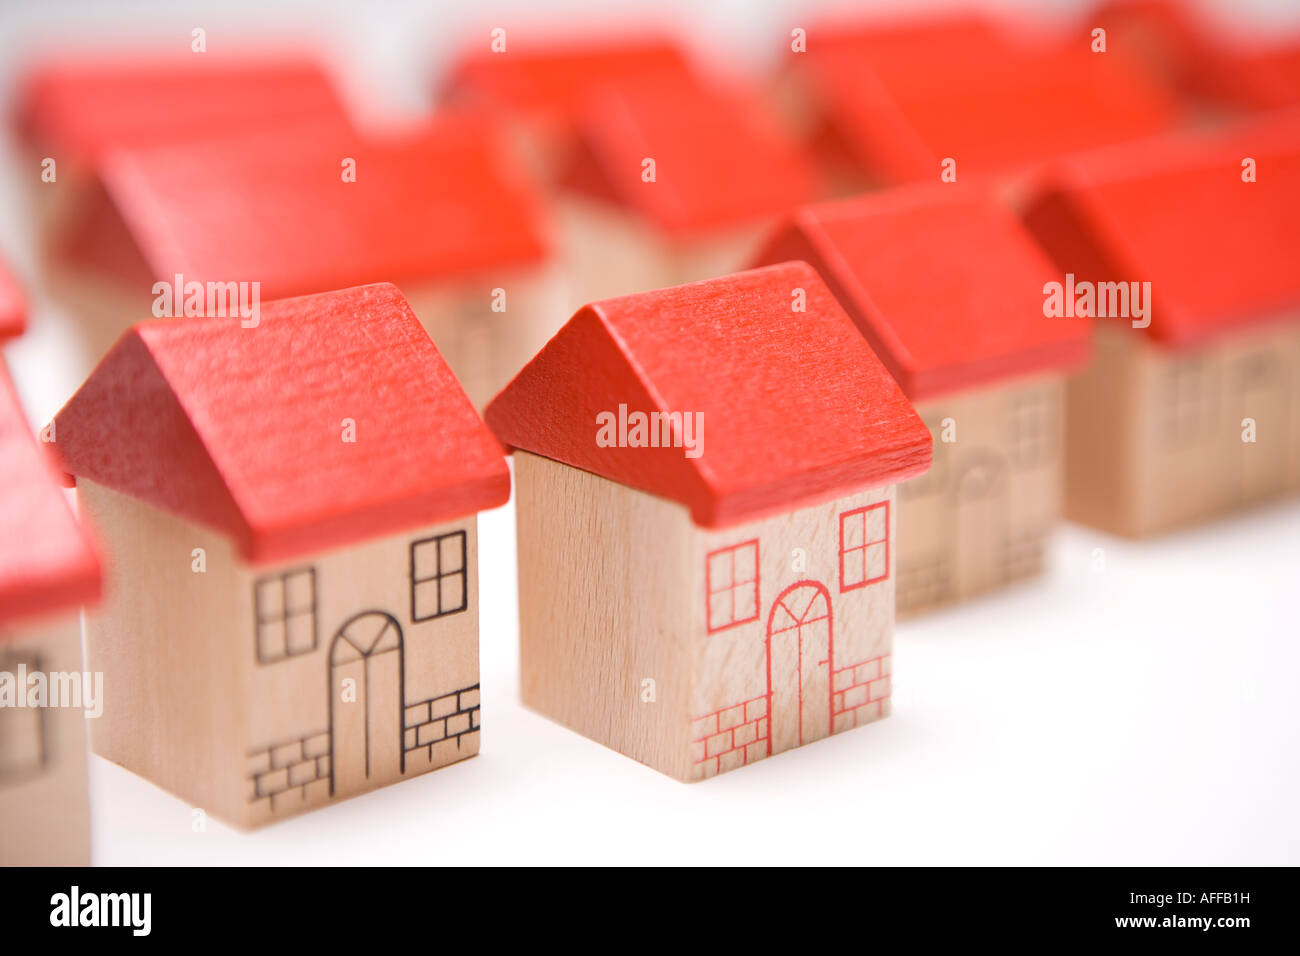 Rows of houses in a housing estate Home sweet home my house or property with individual character - Stock Image